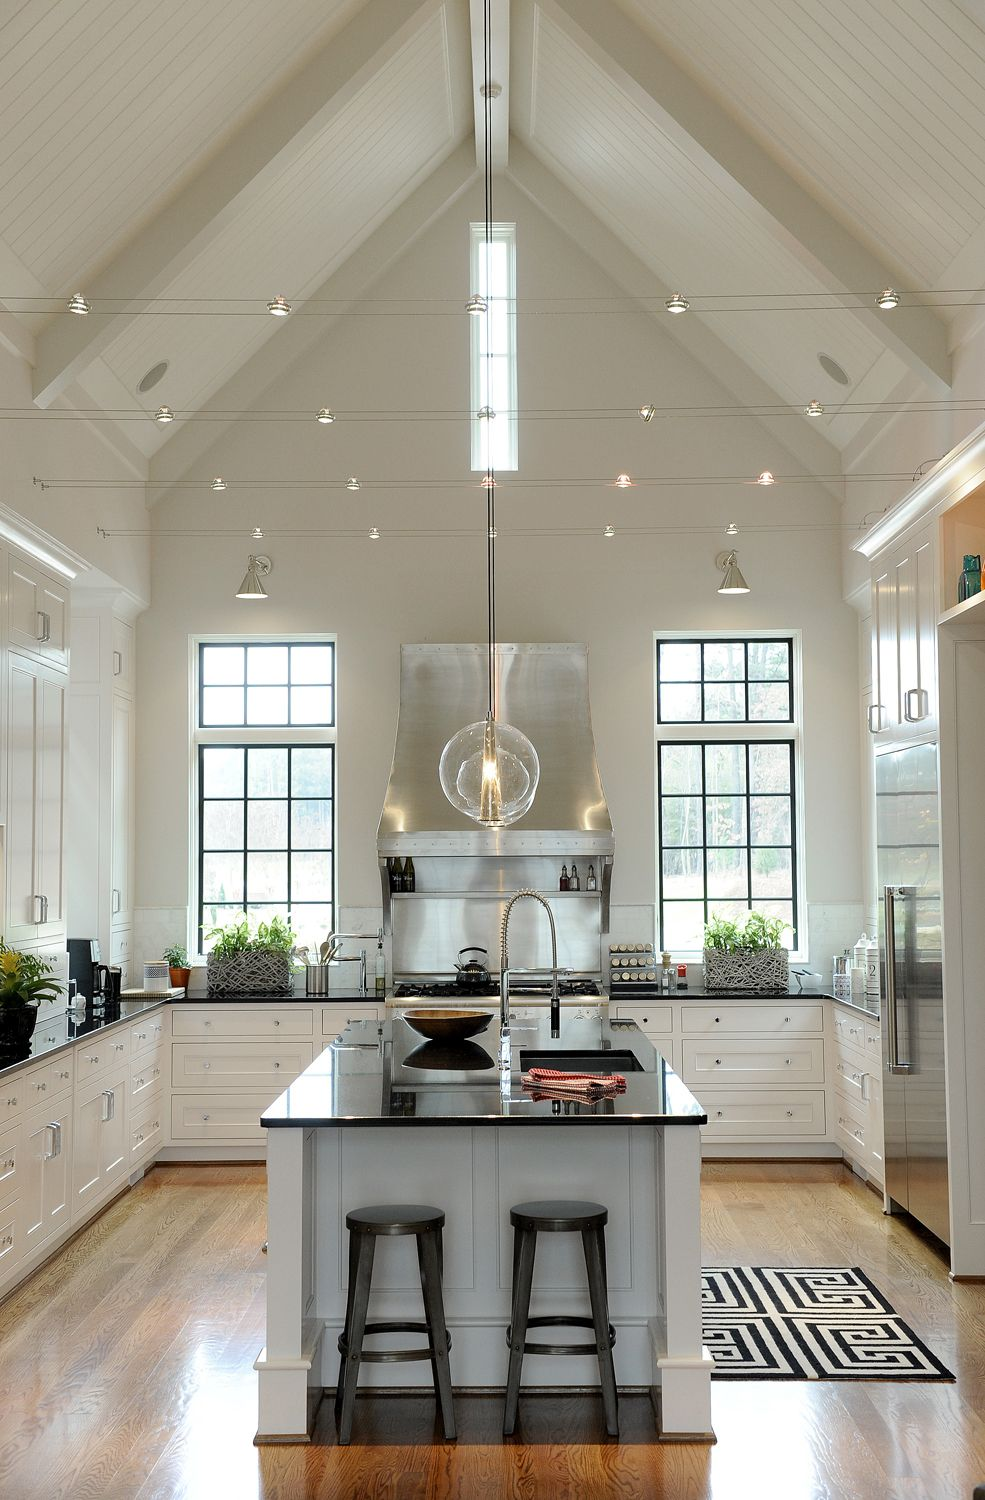 Lighting In Vaulted Ceiling Throughout Window Over The Top Of Living Room Windows The Chancelloru0027s Kitchen At Nc State University Love Volume Black Windows And Lighting Vaulted Ceilings 101 History Pros u0026 Cons Inspirational